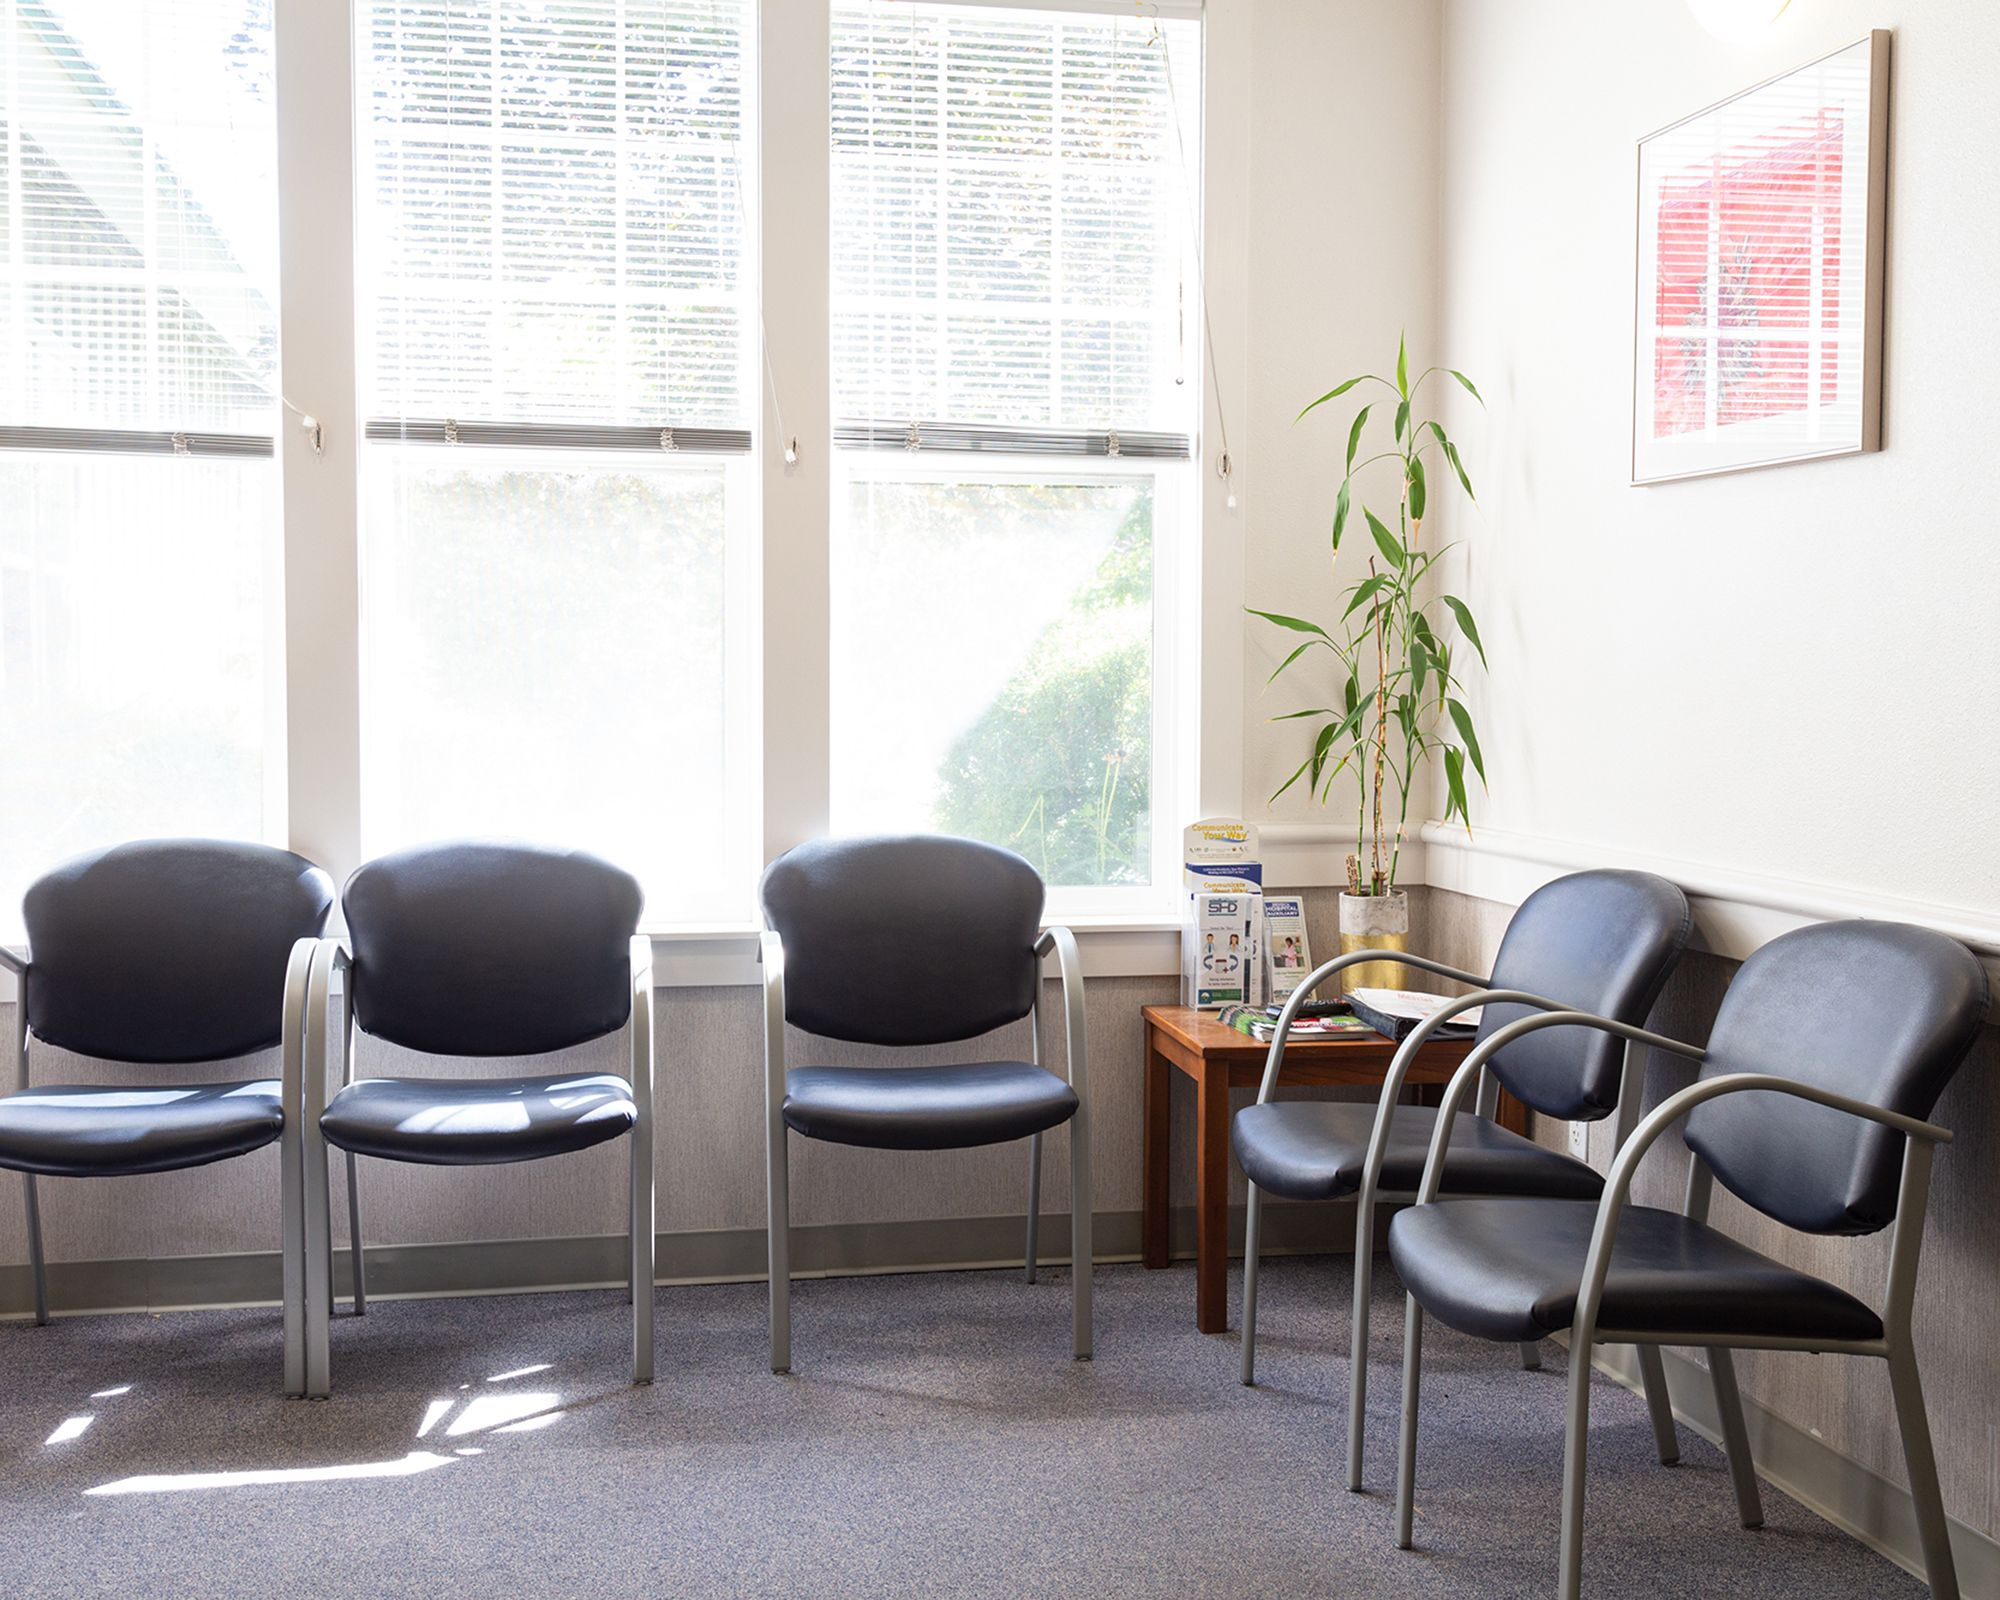 Waiting room with black chairs and natural light